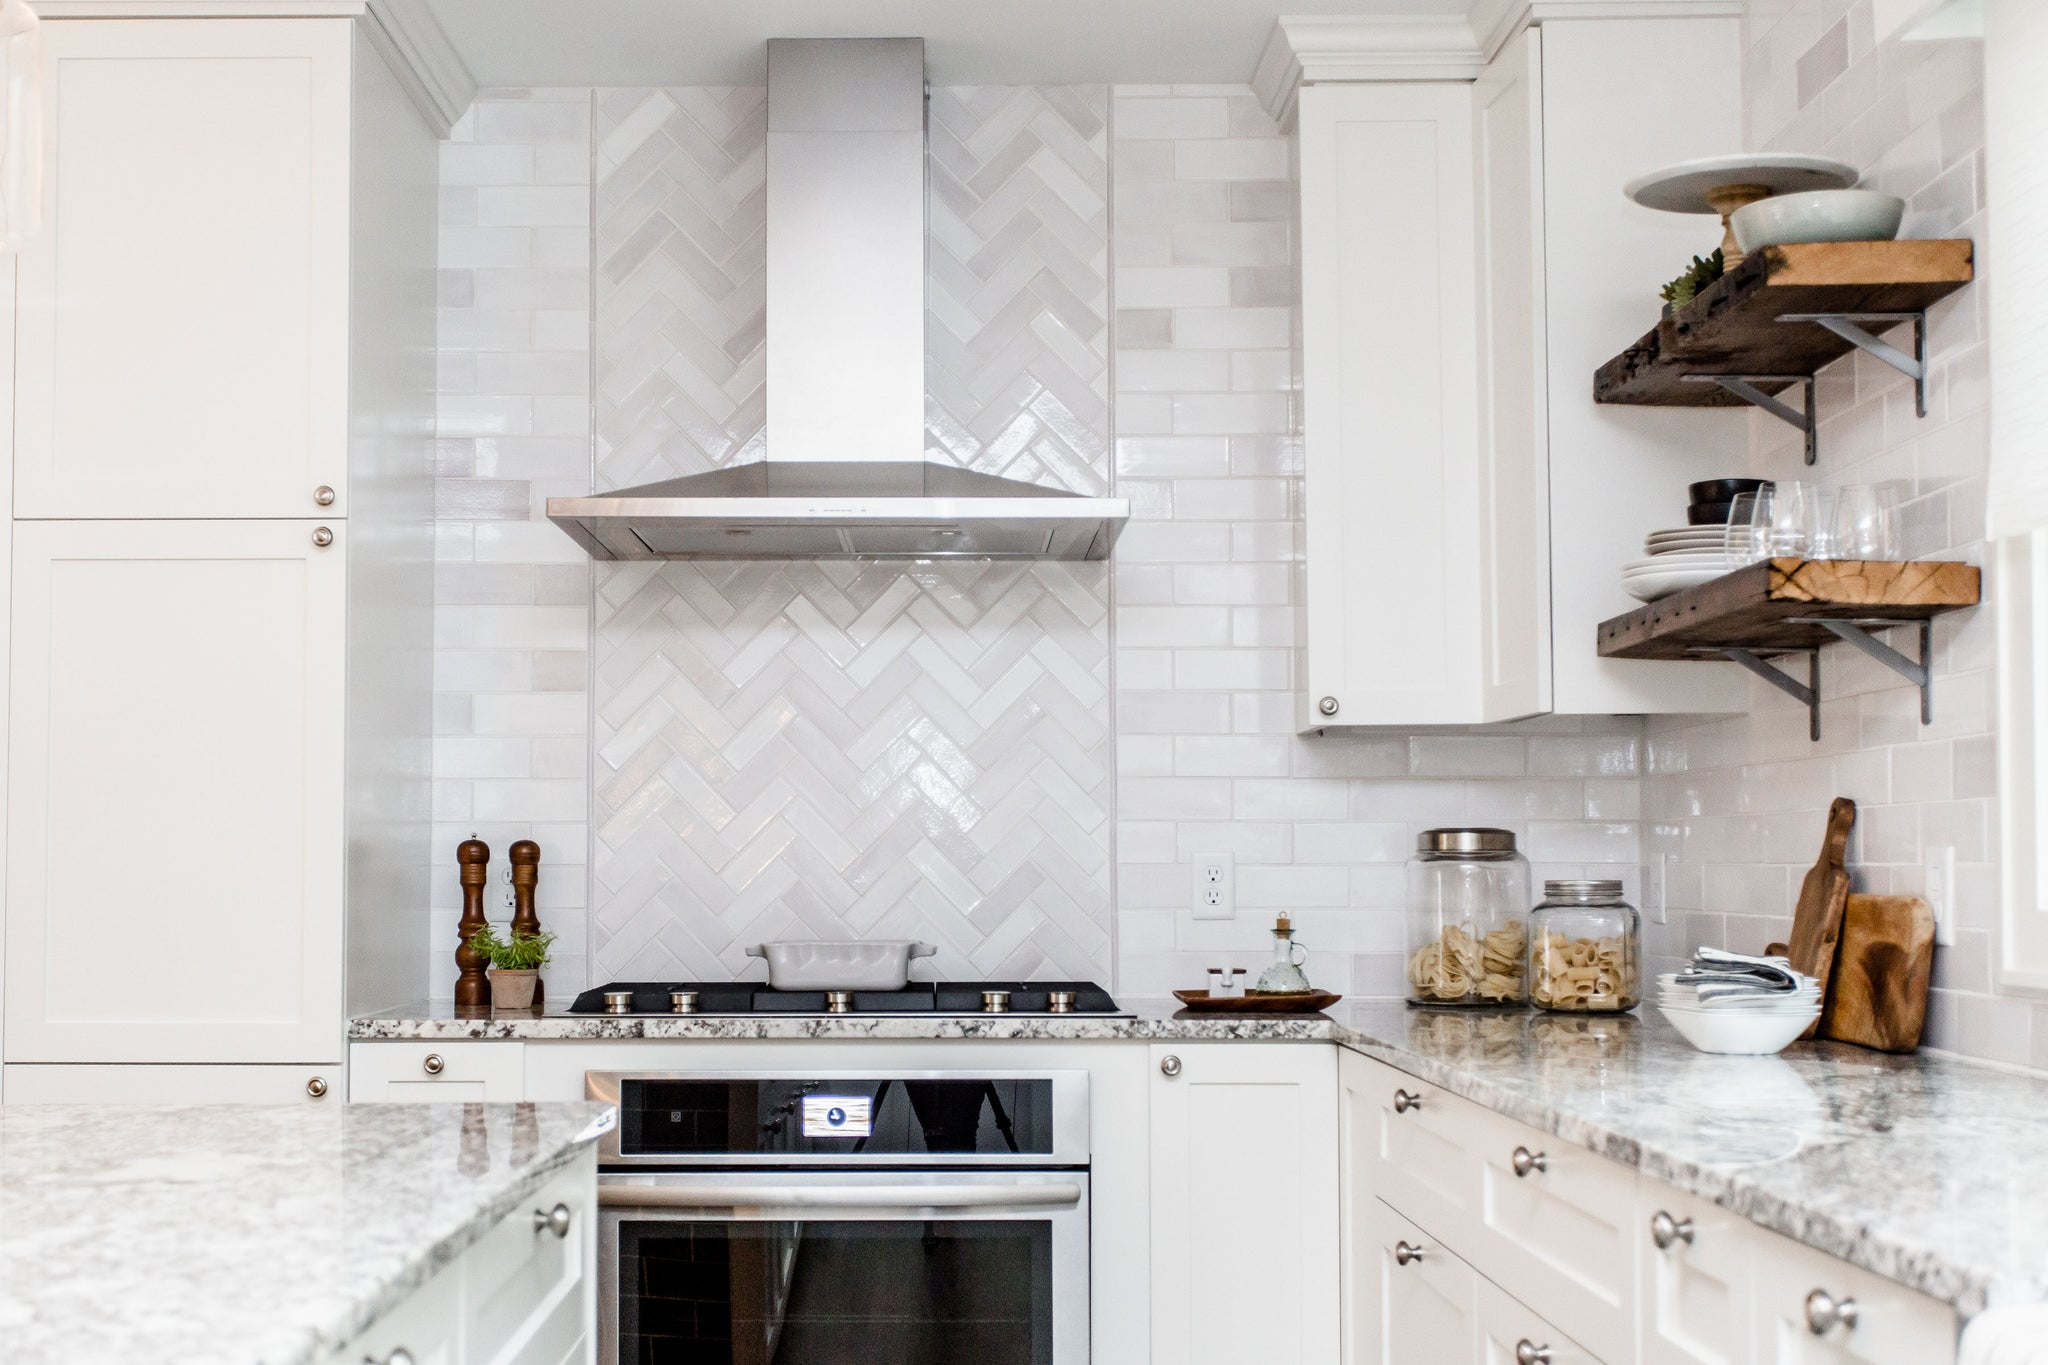 Mid-Century Modern Kitchen Backsplash